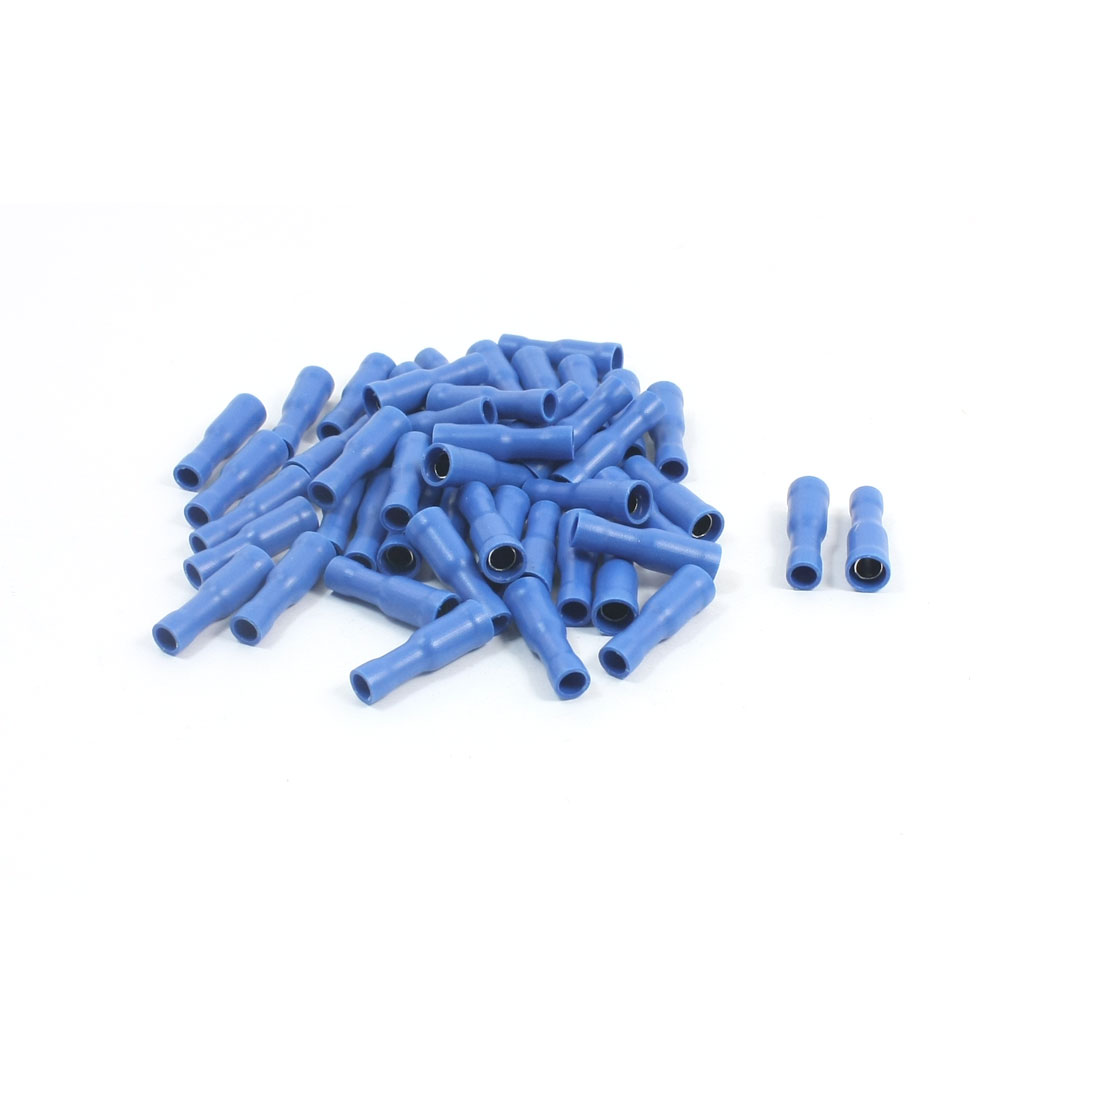 50Pcs 16-14 AWG FRD2-156 Blue PVC Sleeve Insulated Cable Terminals Crimp